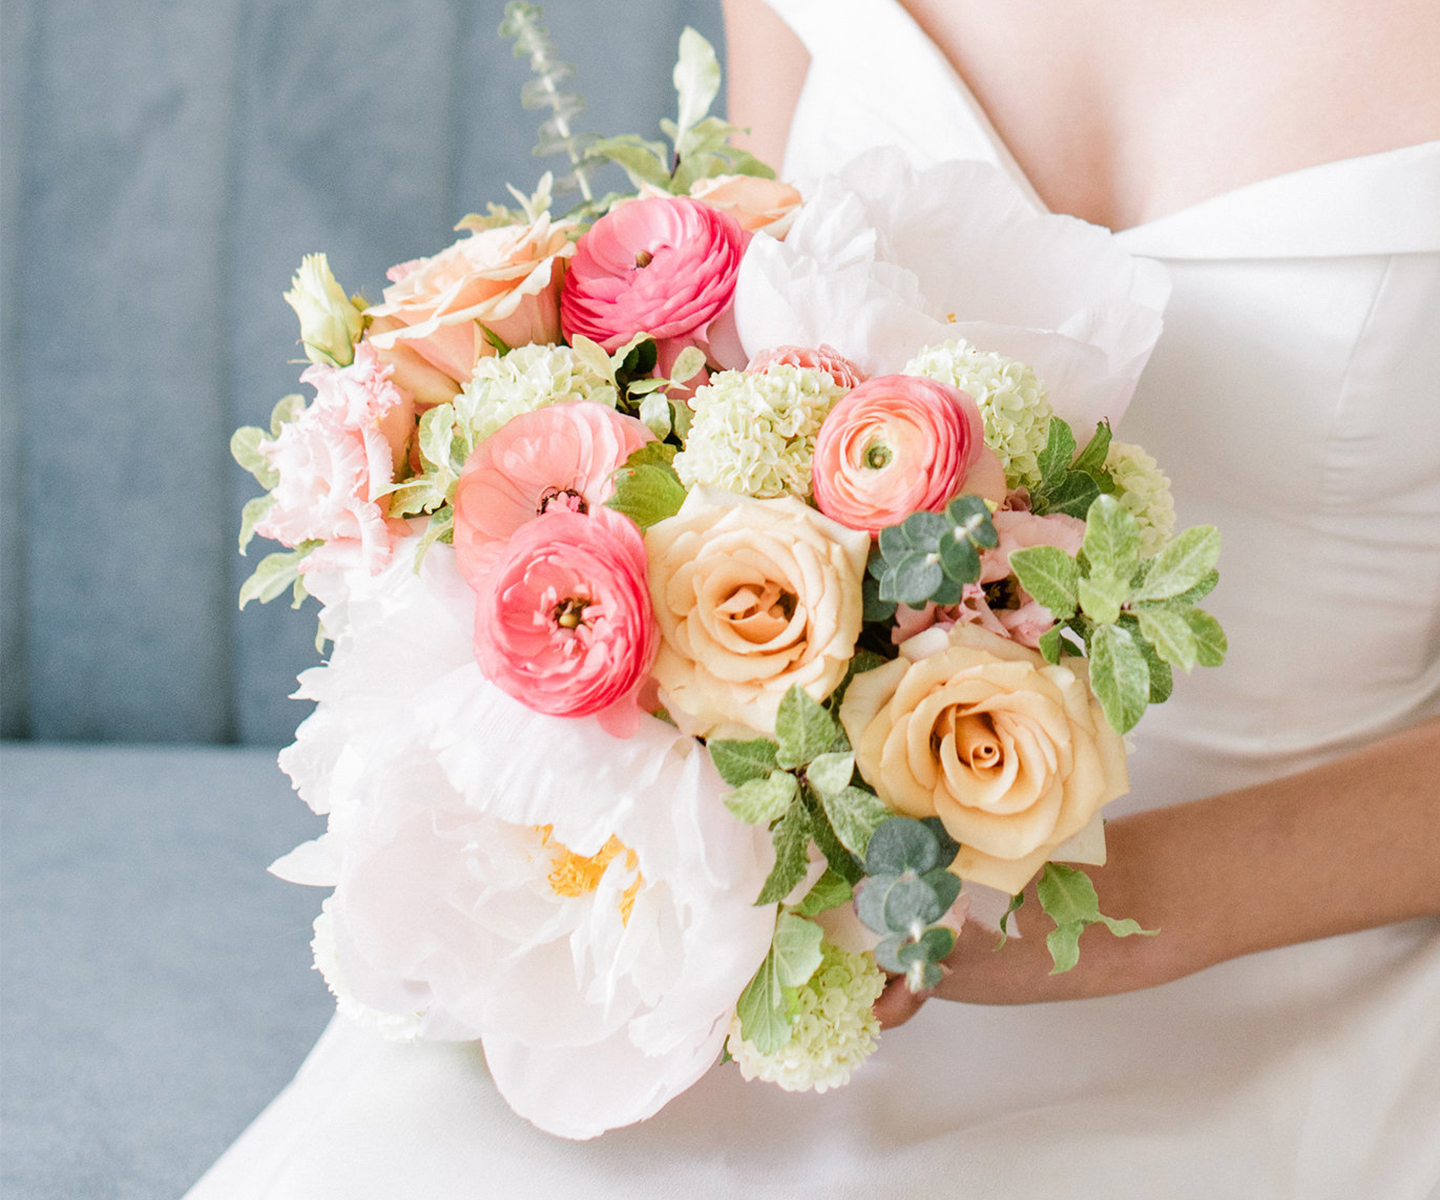 Bridal Bouquet Inspiration for Spring: 12 of the Prettiest Bouquets We've Seen This Spring in Alberta and the Rockies - Flowers by Janie on The Bronte Bride